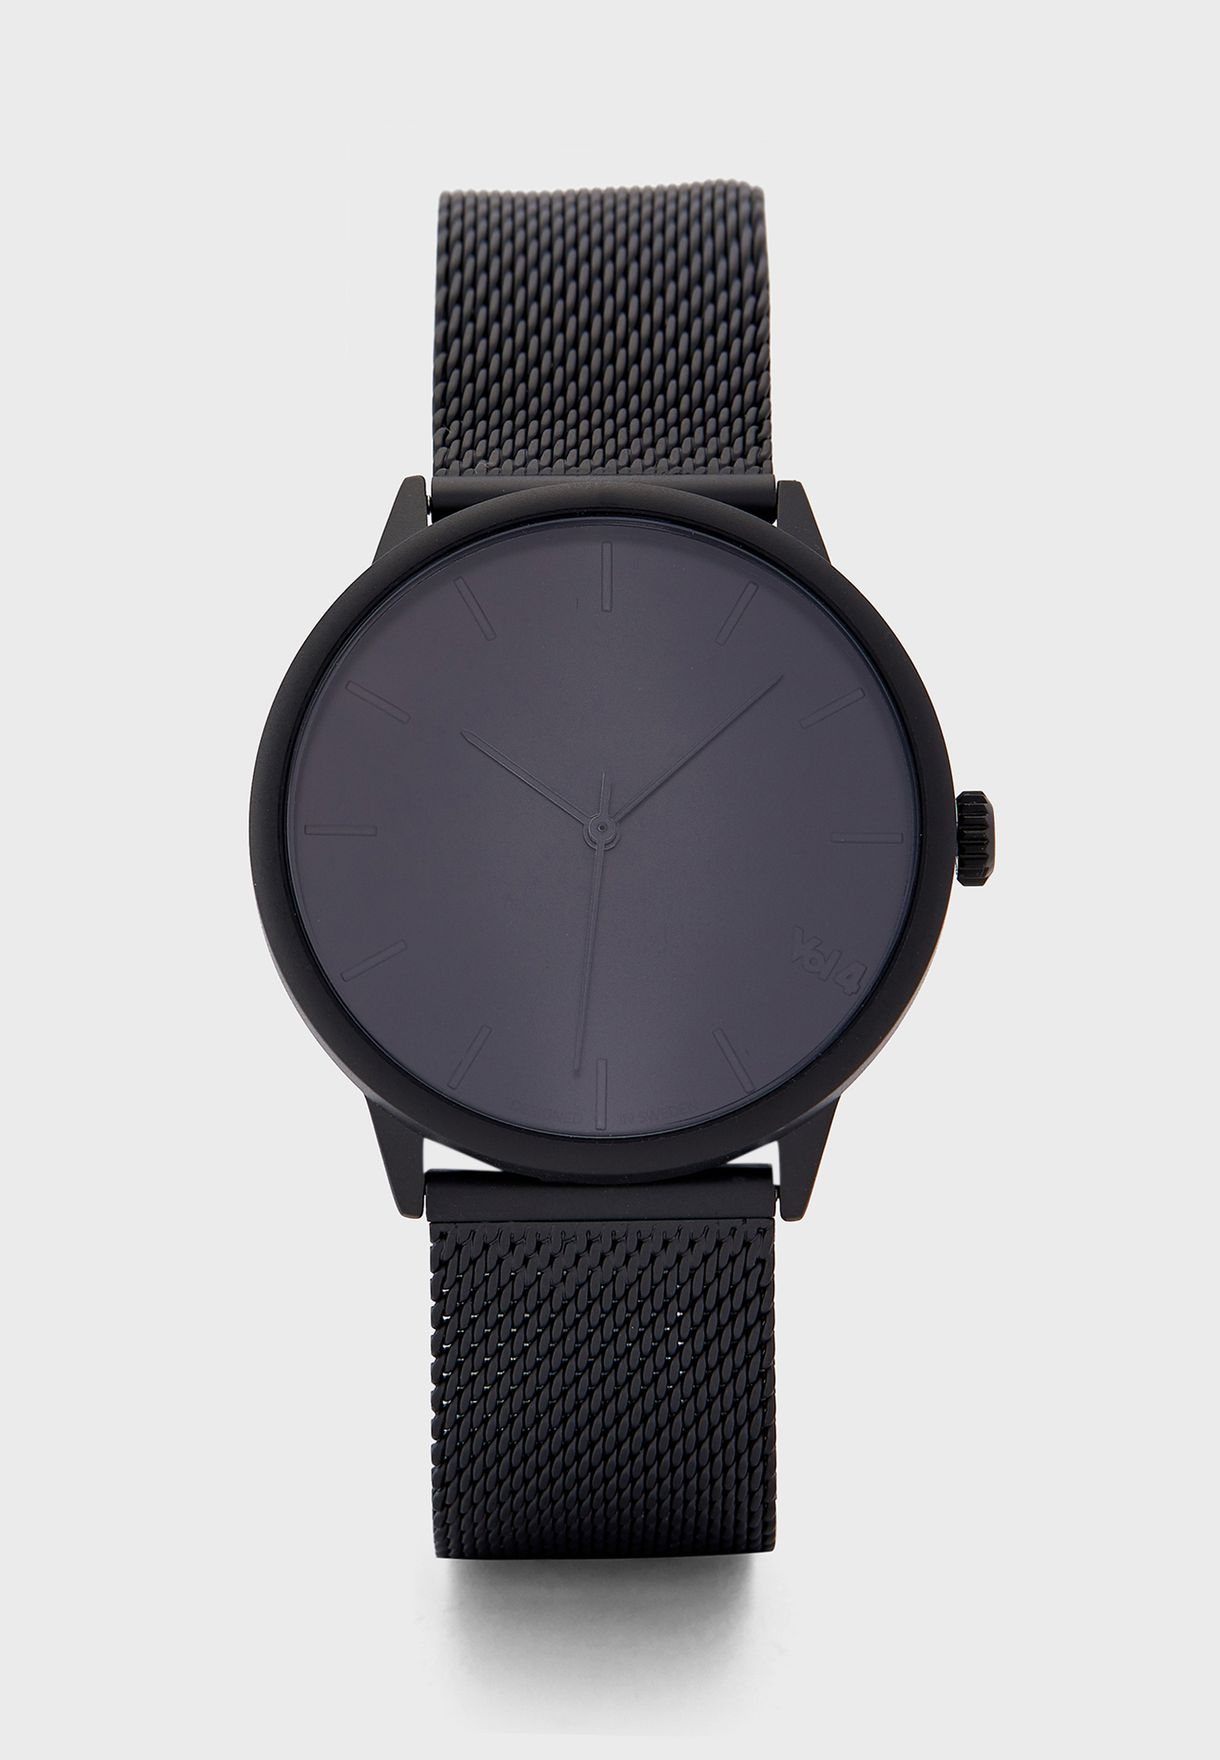 The Nuge Analog Watch